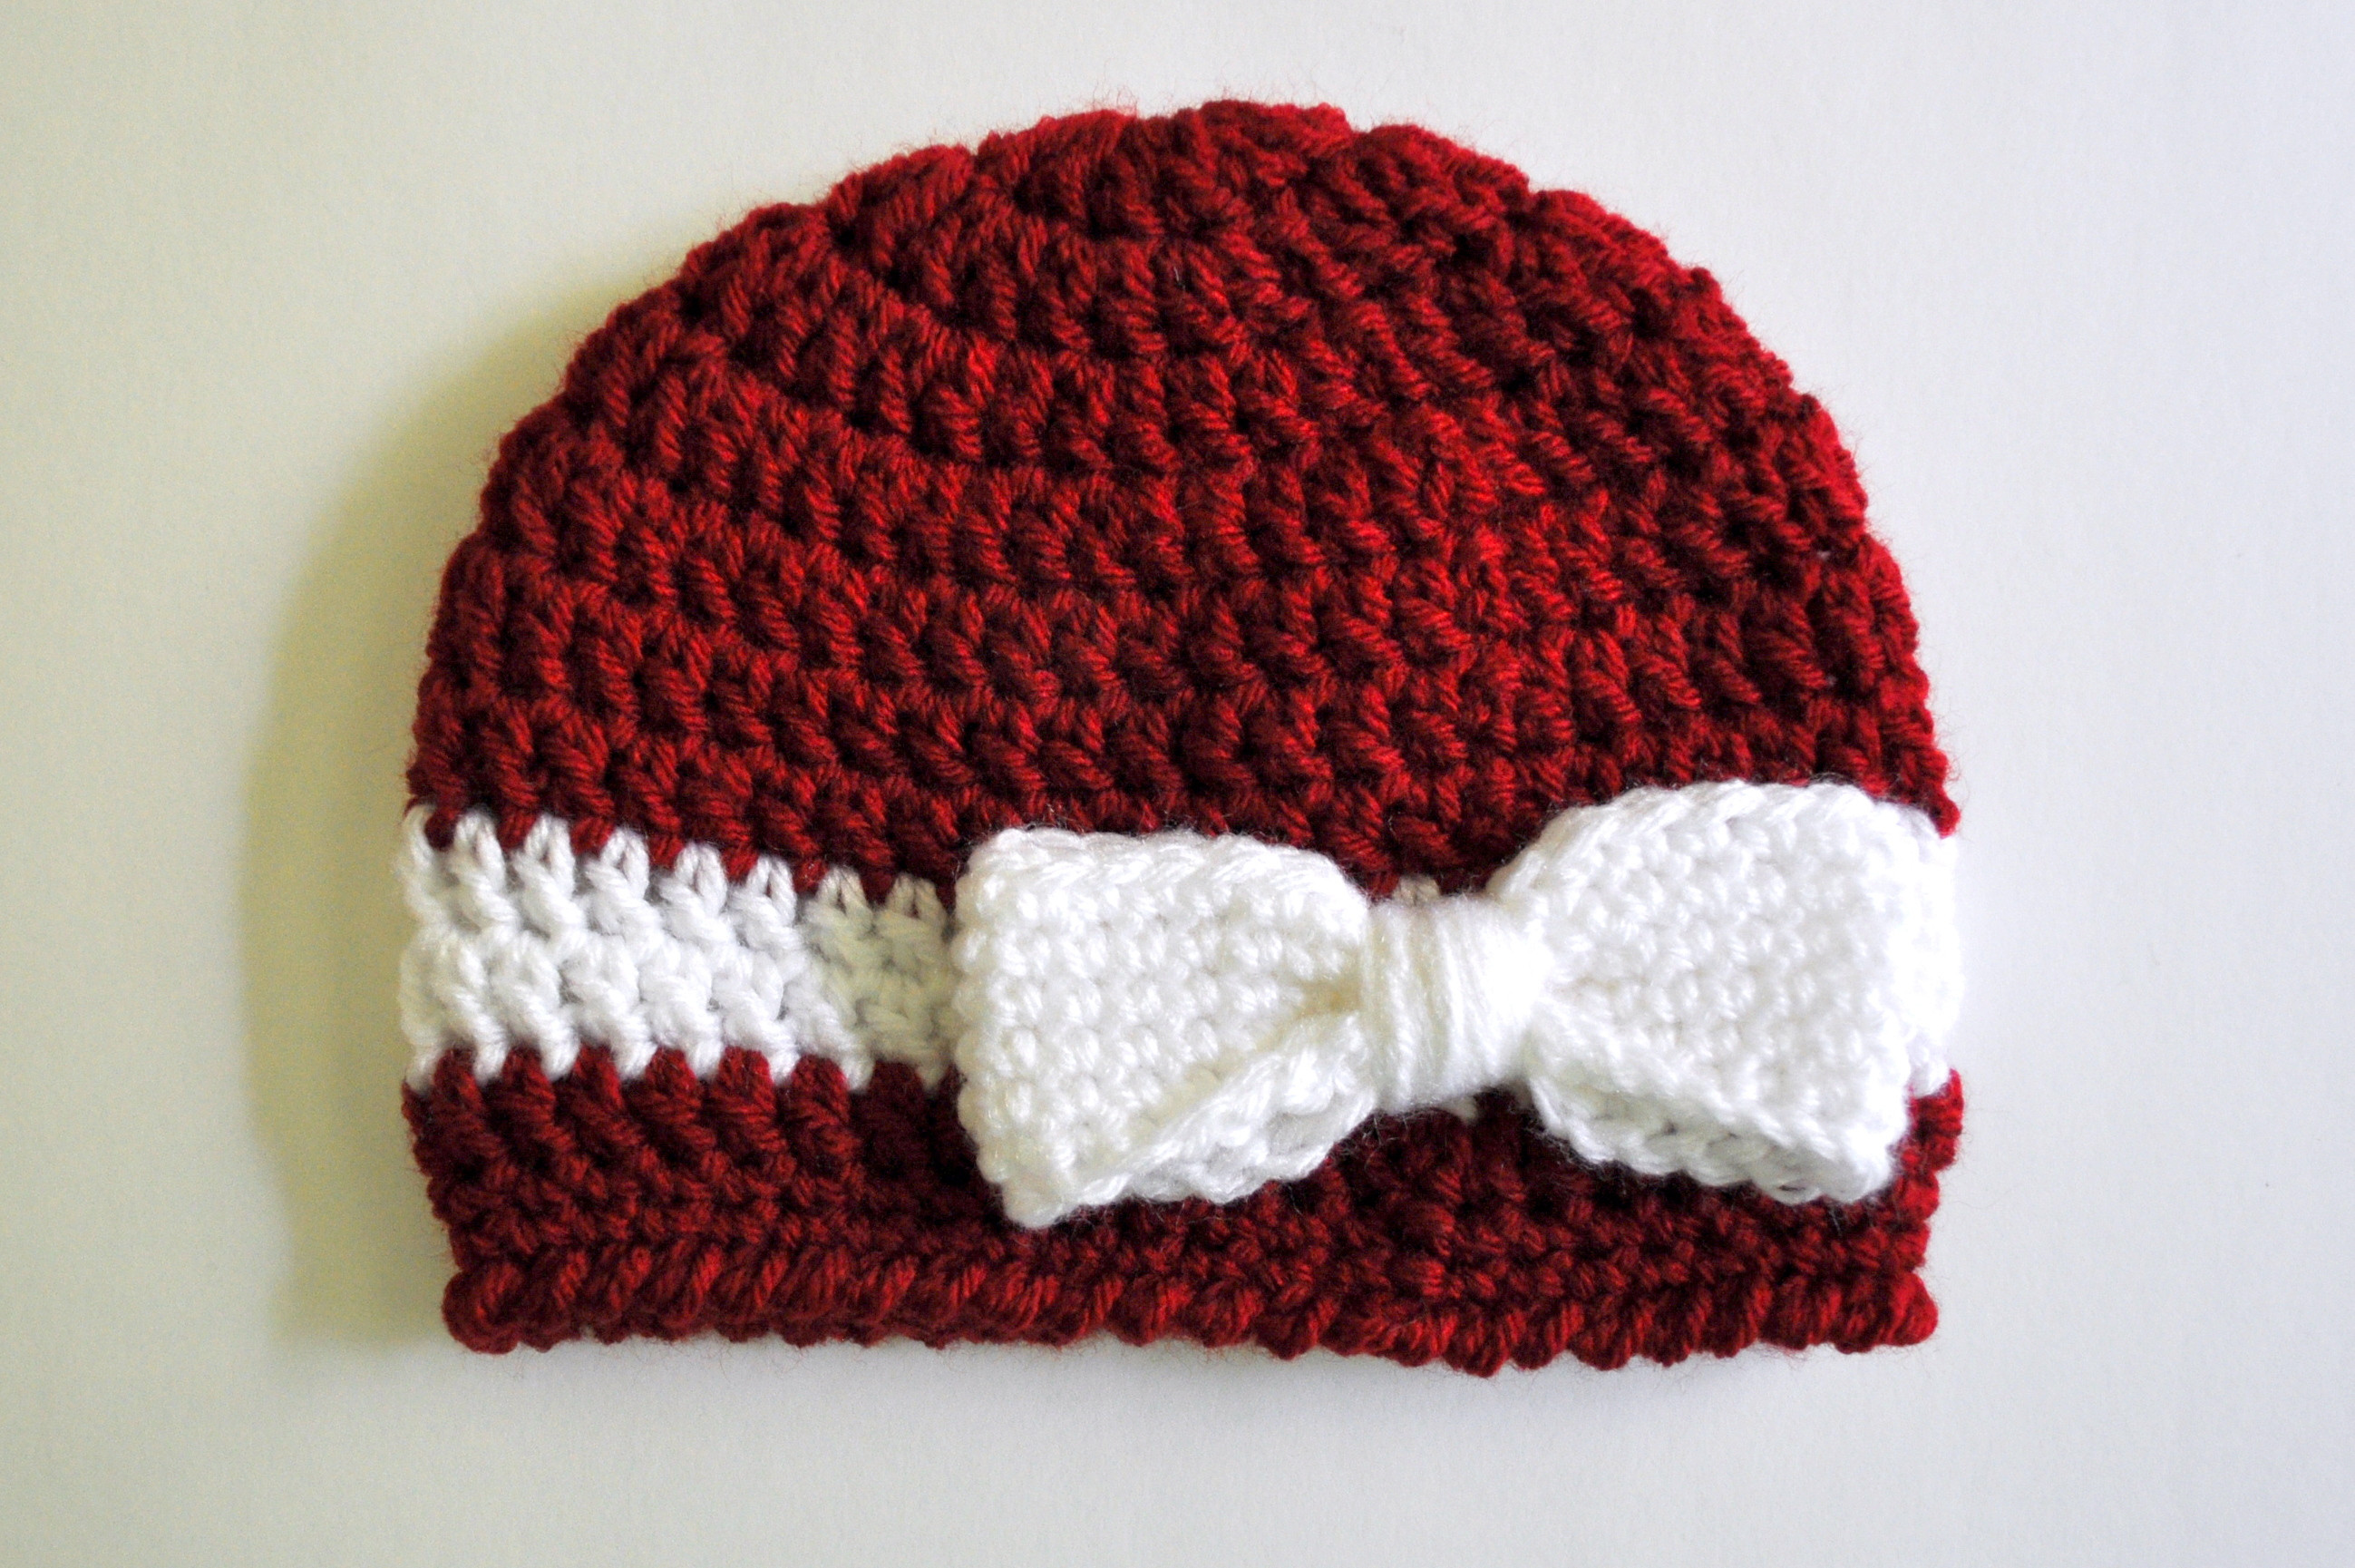 How to make a crochet baby beanie pattern in one sitting